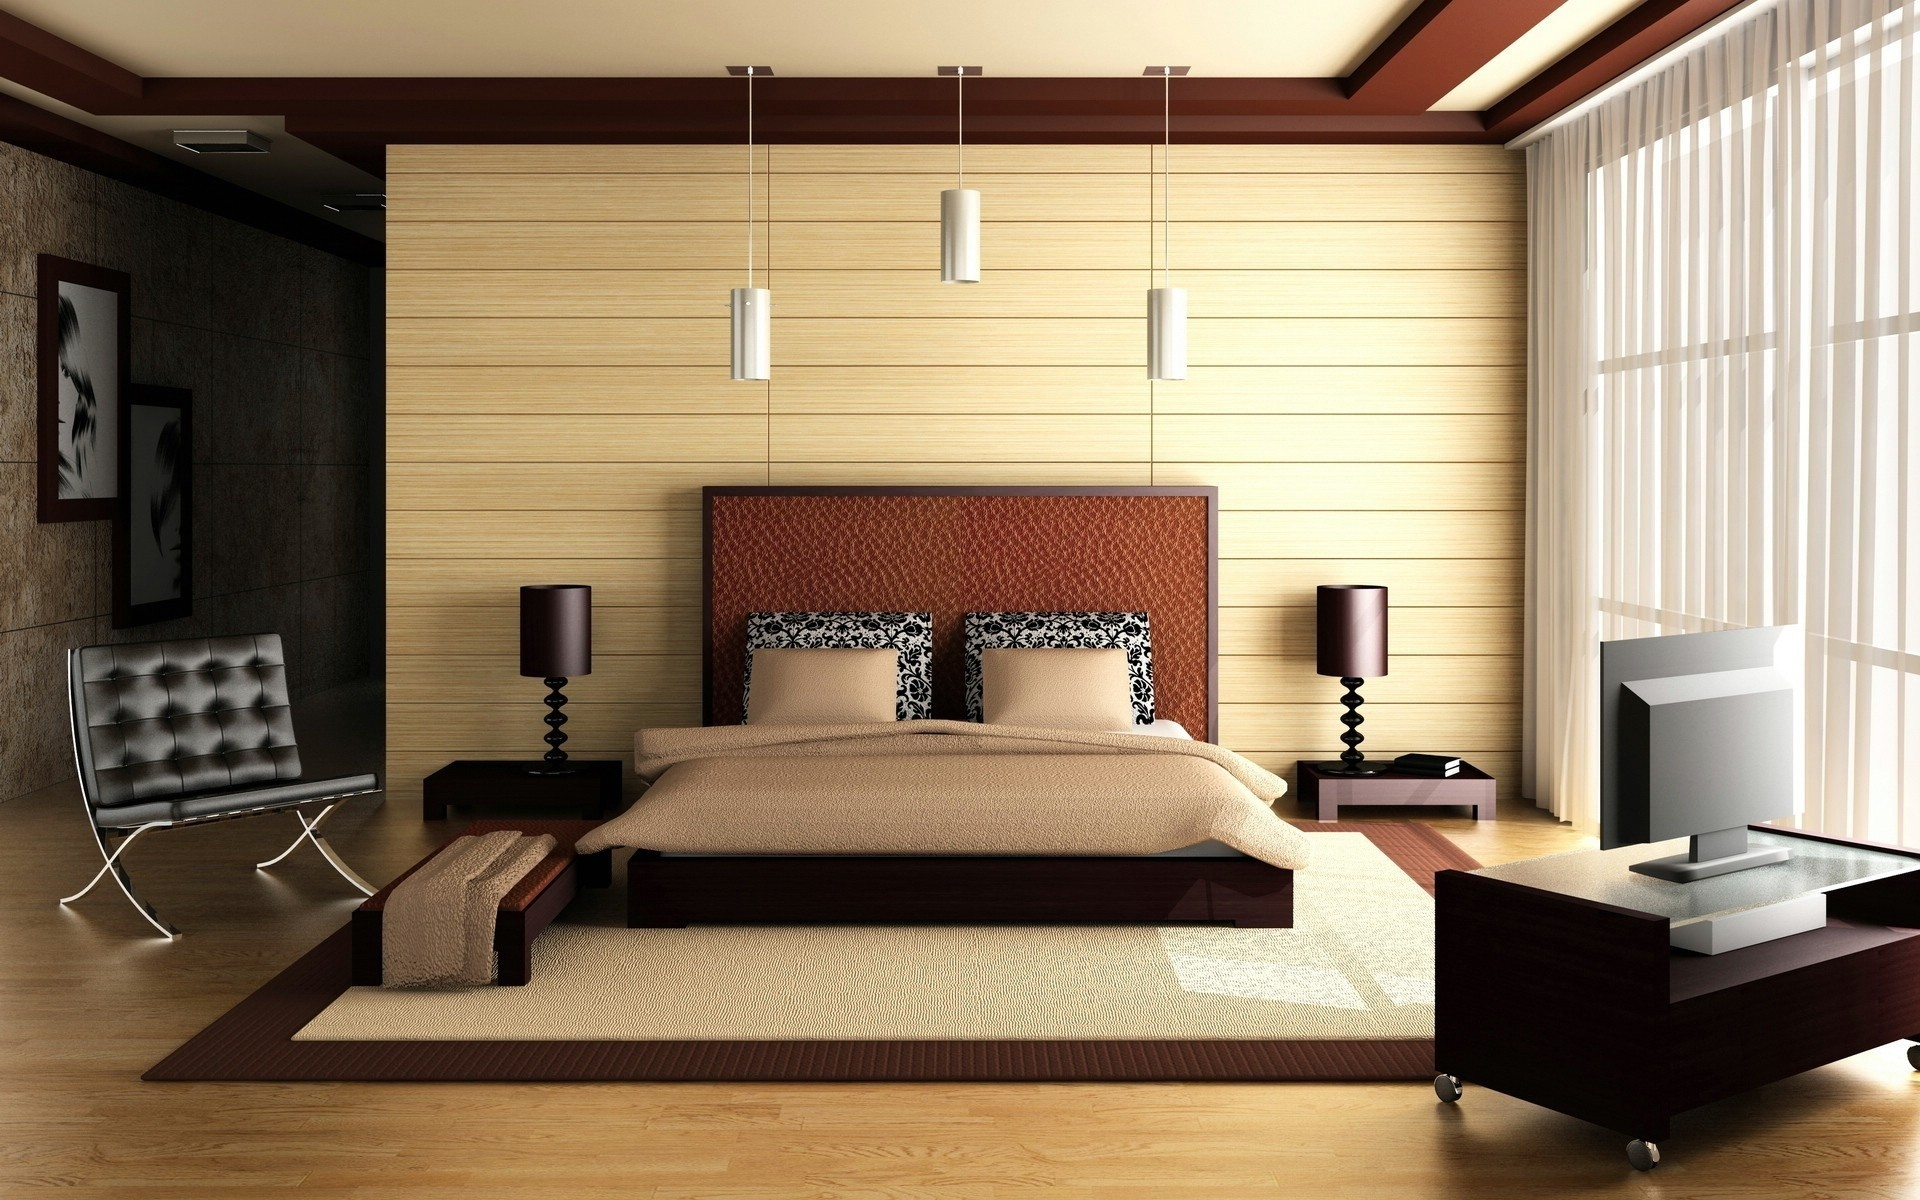 beds interior bedroom modern HD Wallpaper